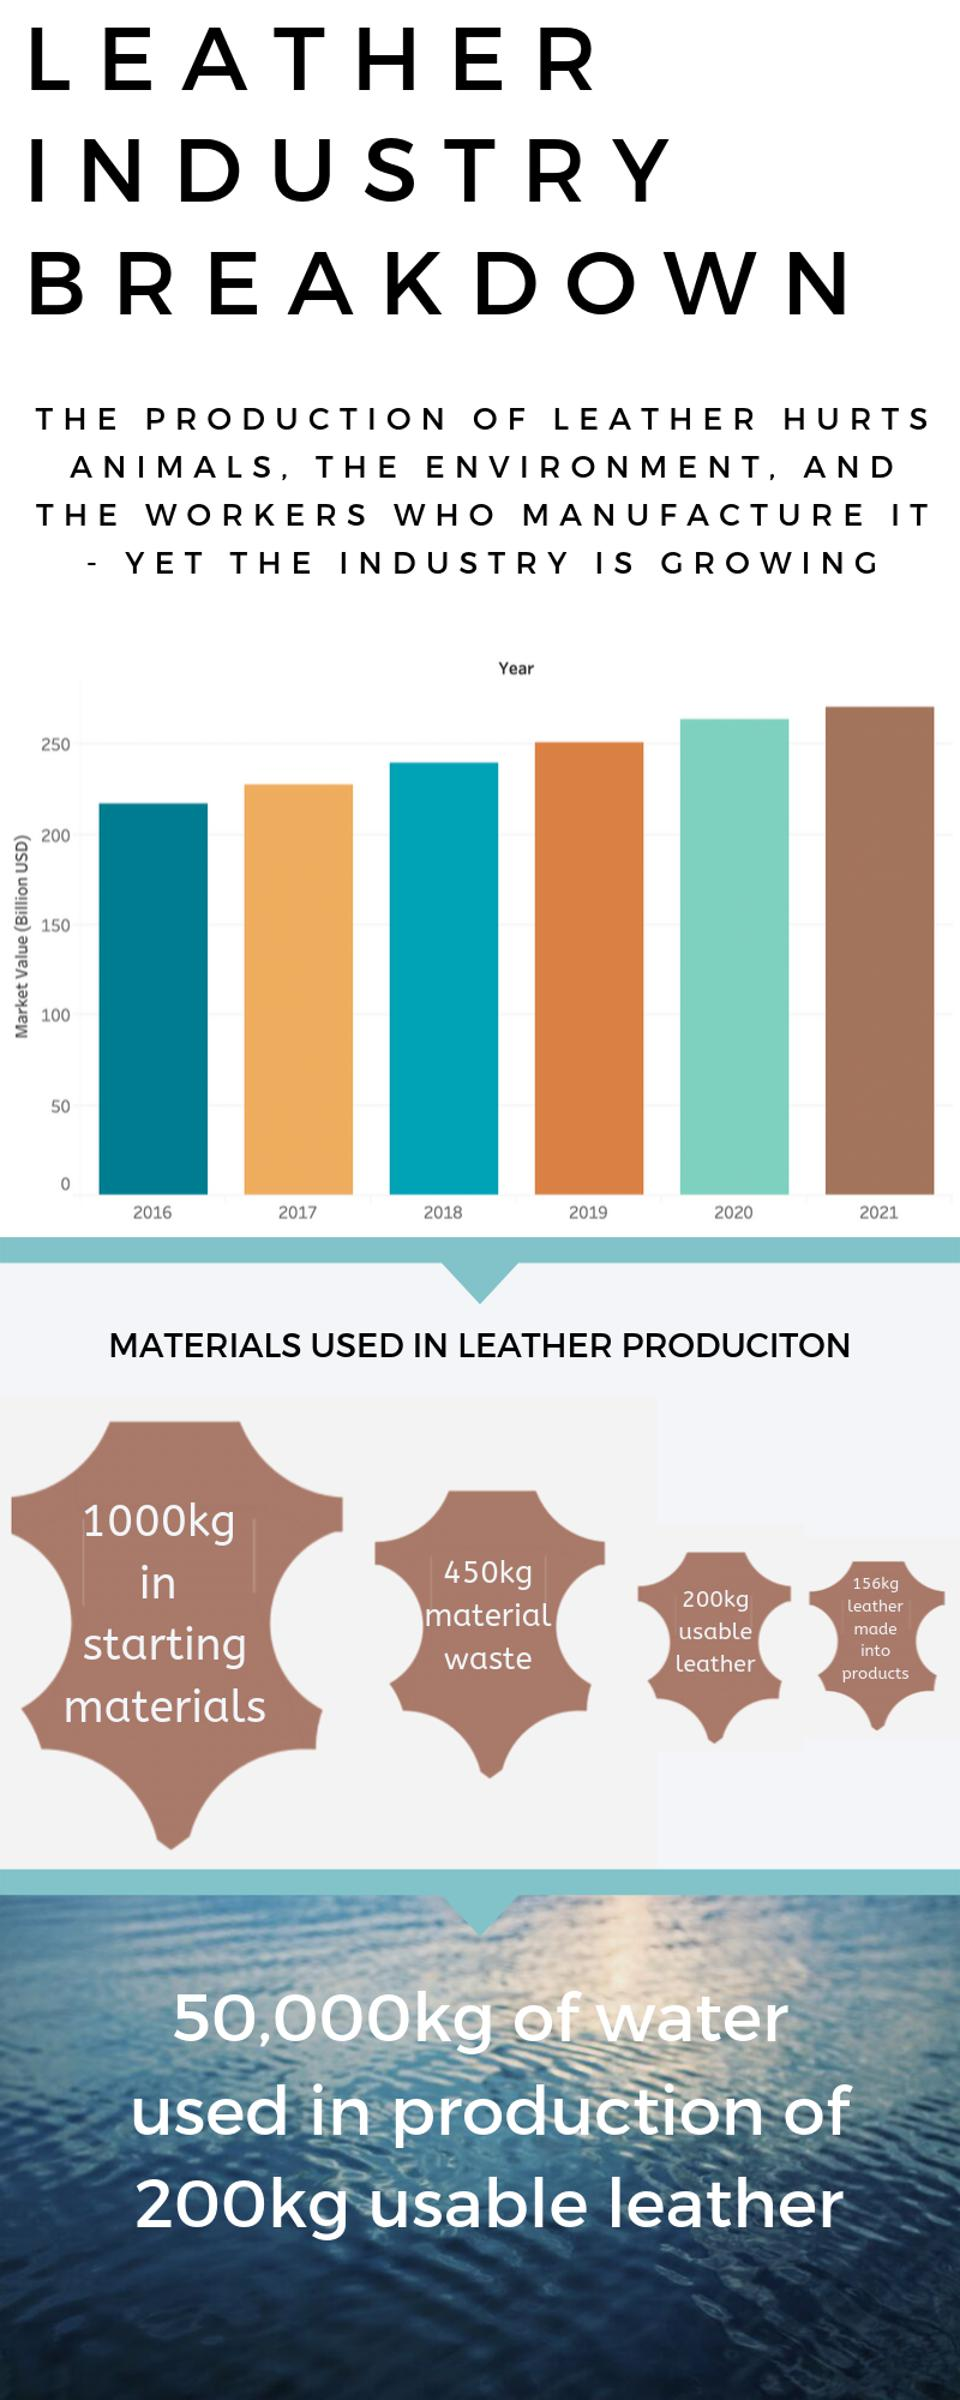 A Breakdown of The Leather Industry